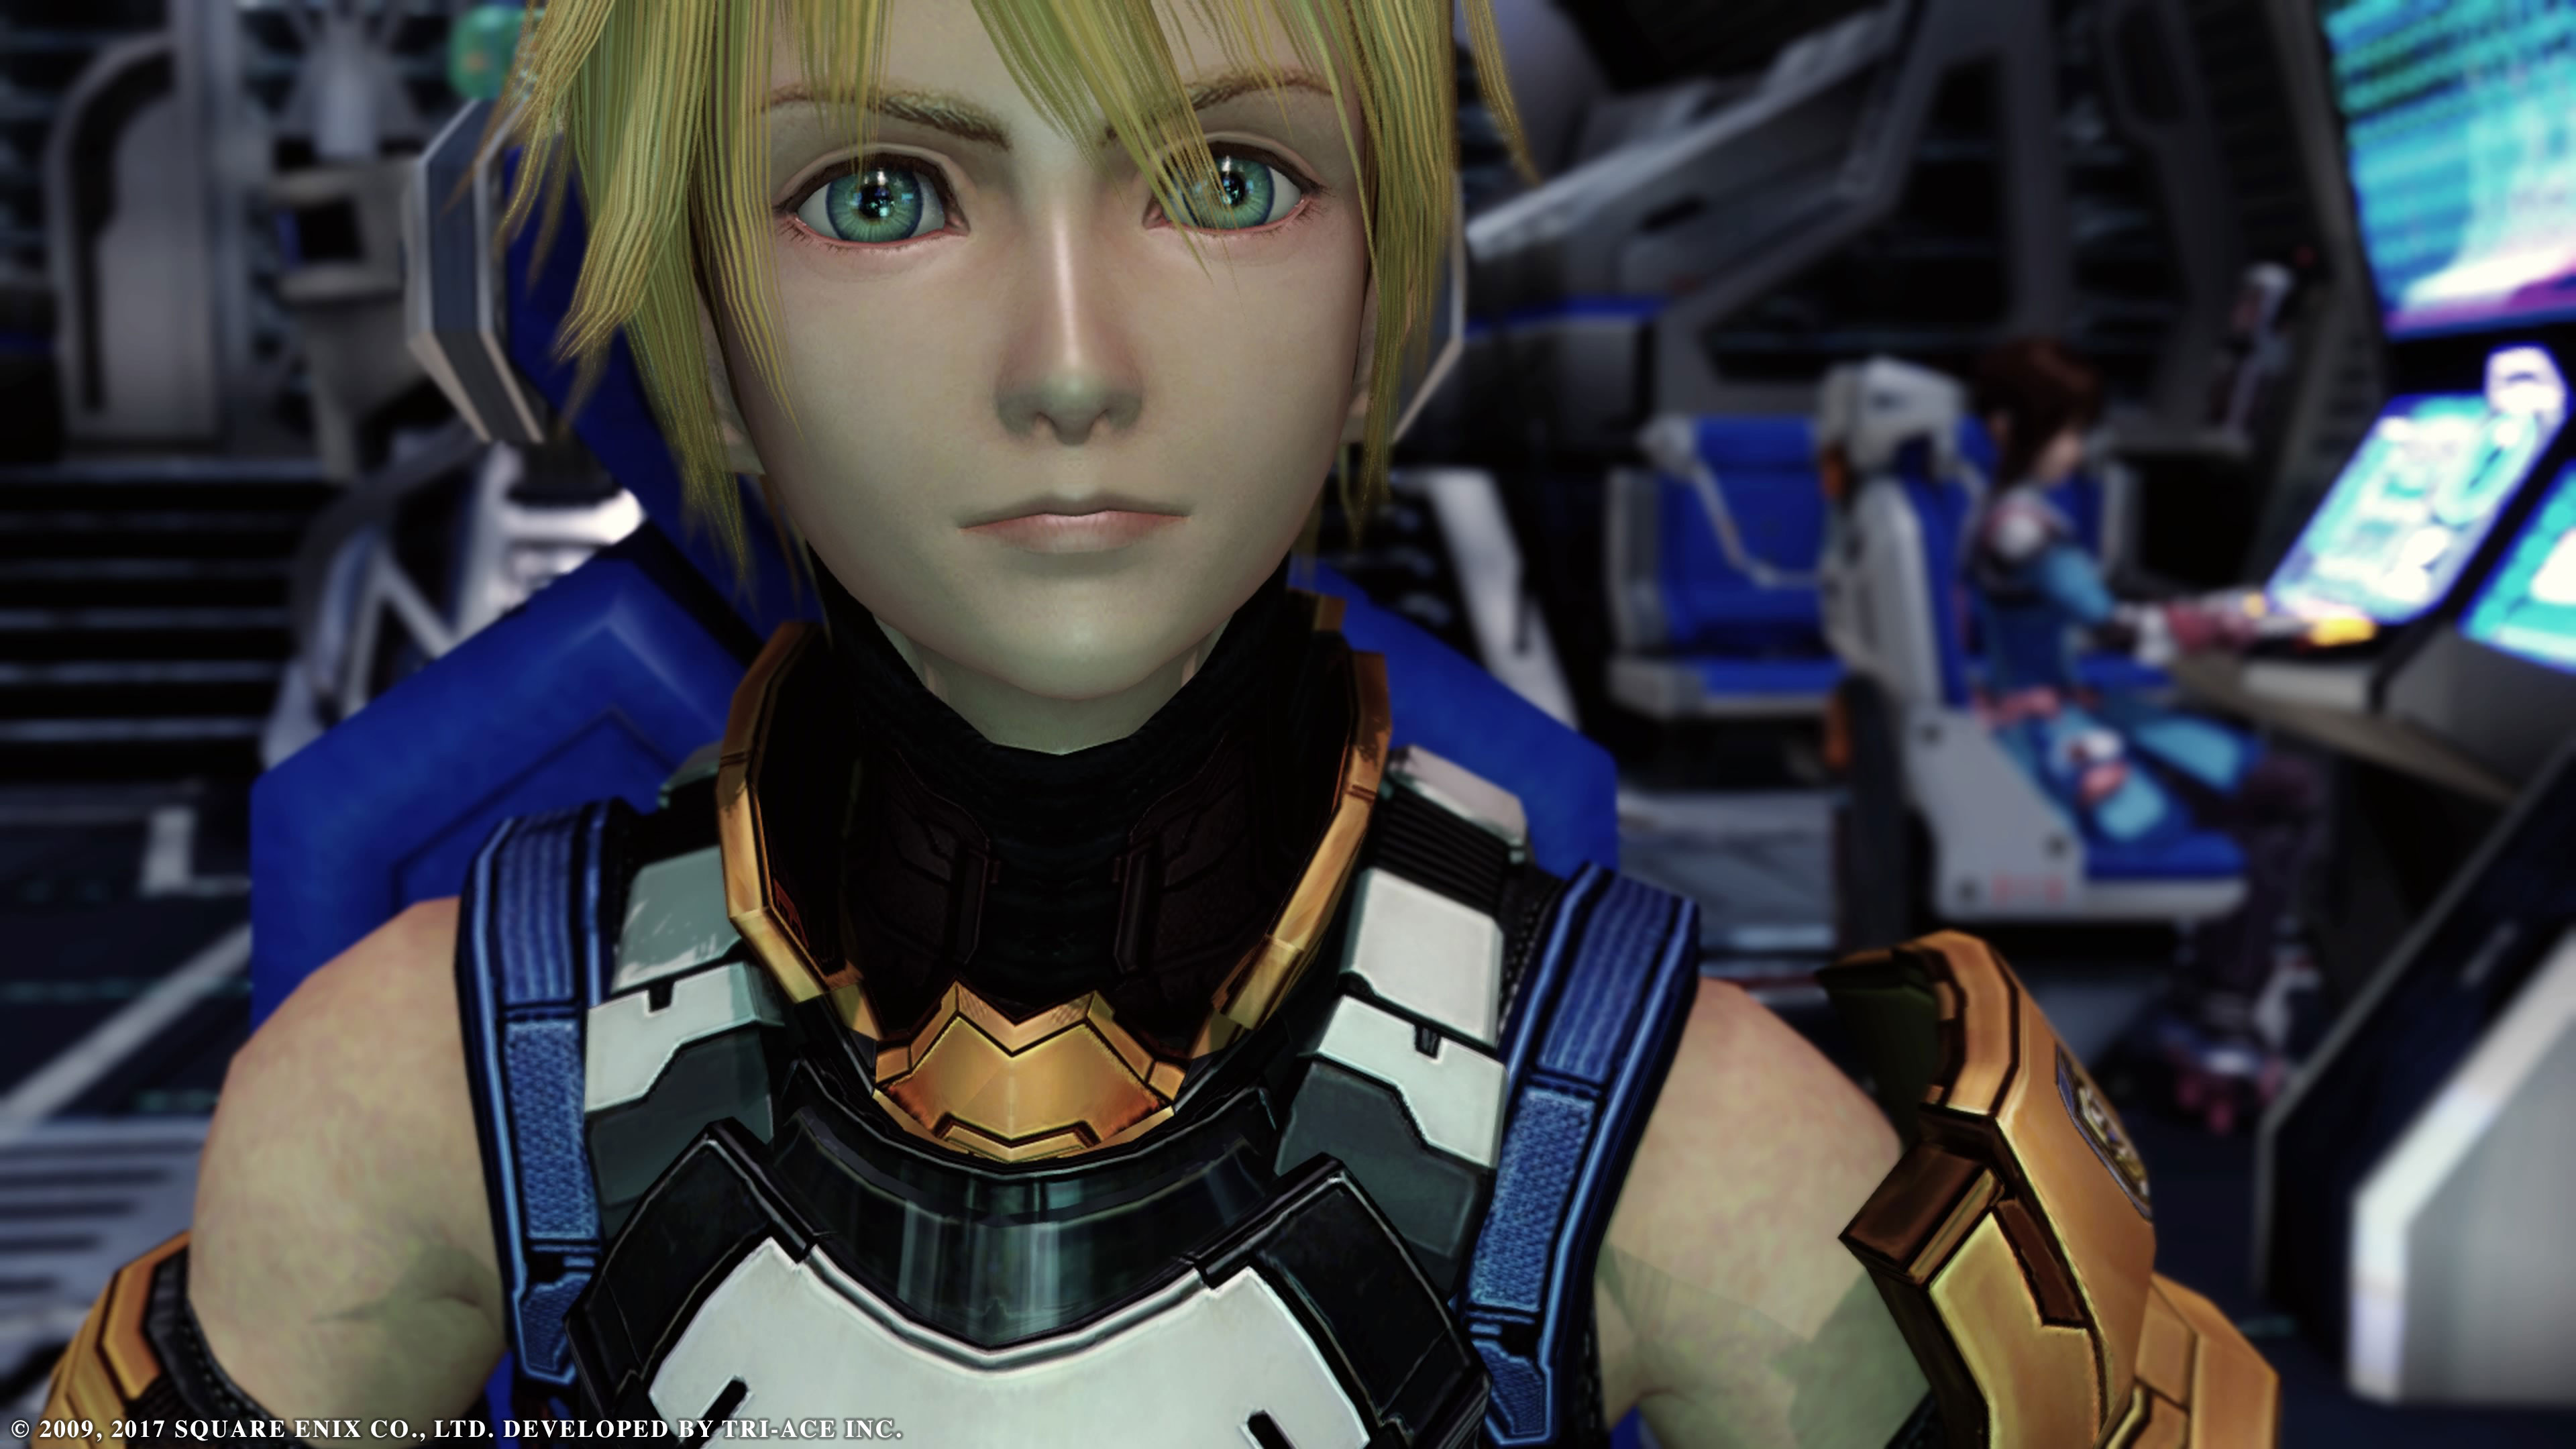 Square Enix's Classic Star Ocean: The Last Hope Gets 4K Remaster